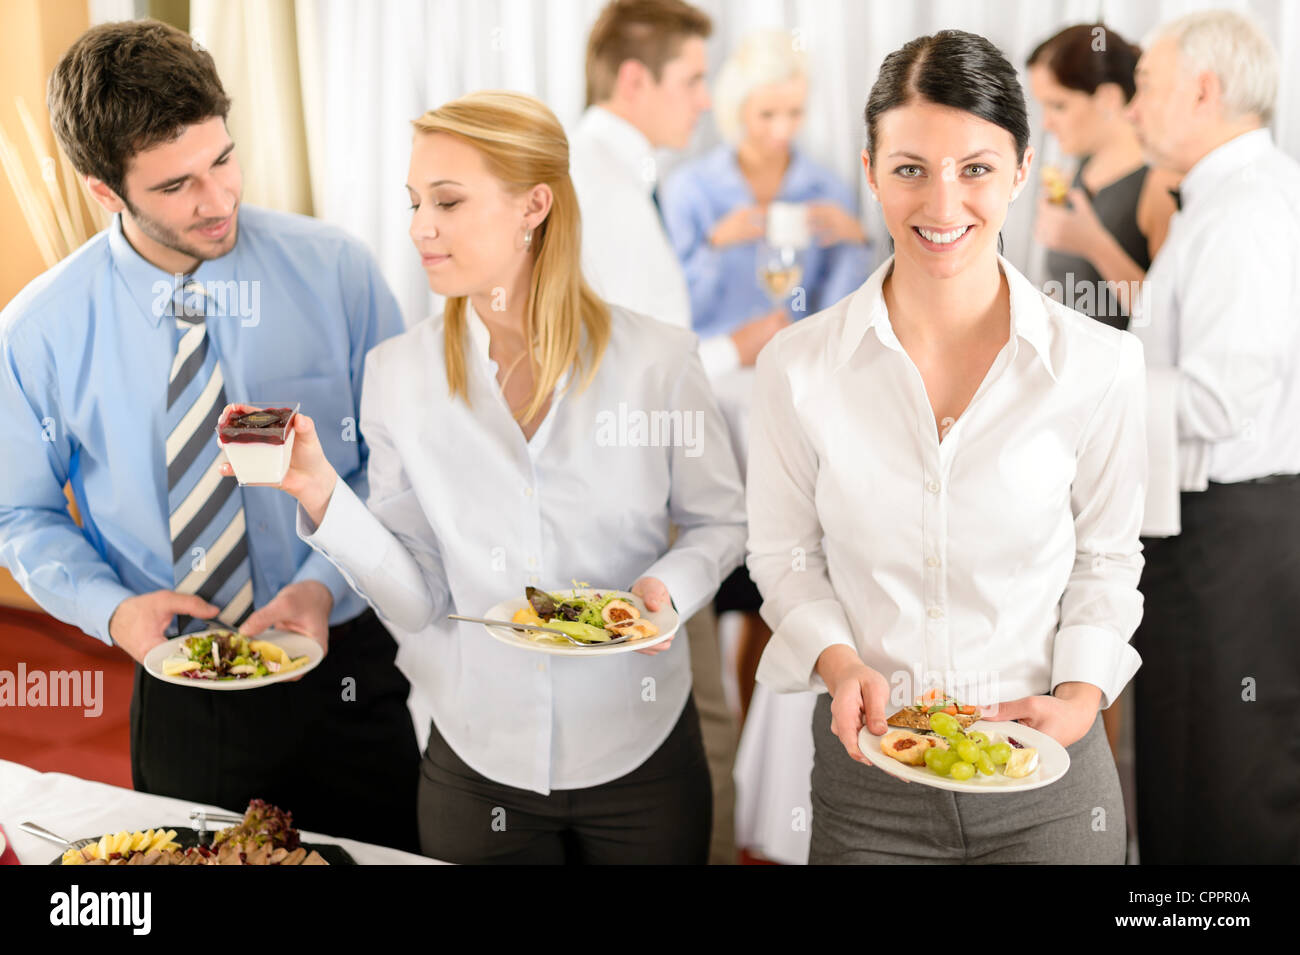 Business colleagues serve themselves at buffet catering service company event - Stock Image